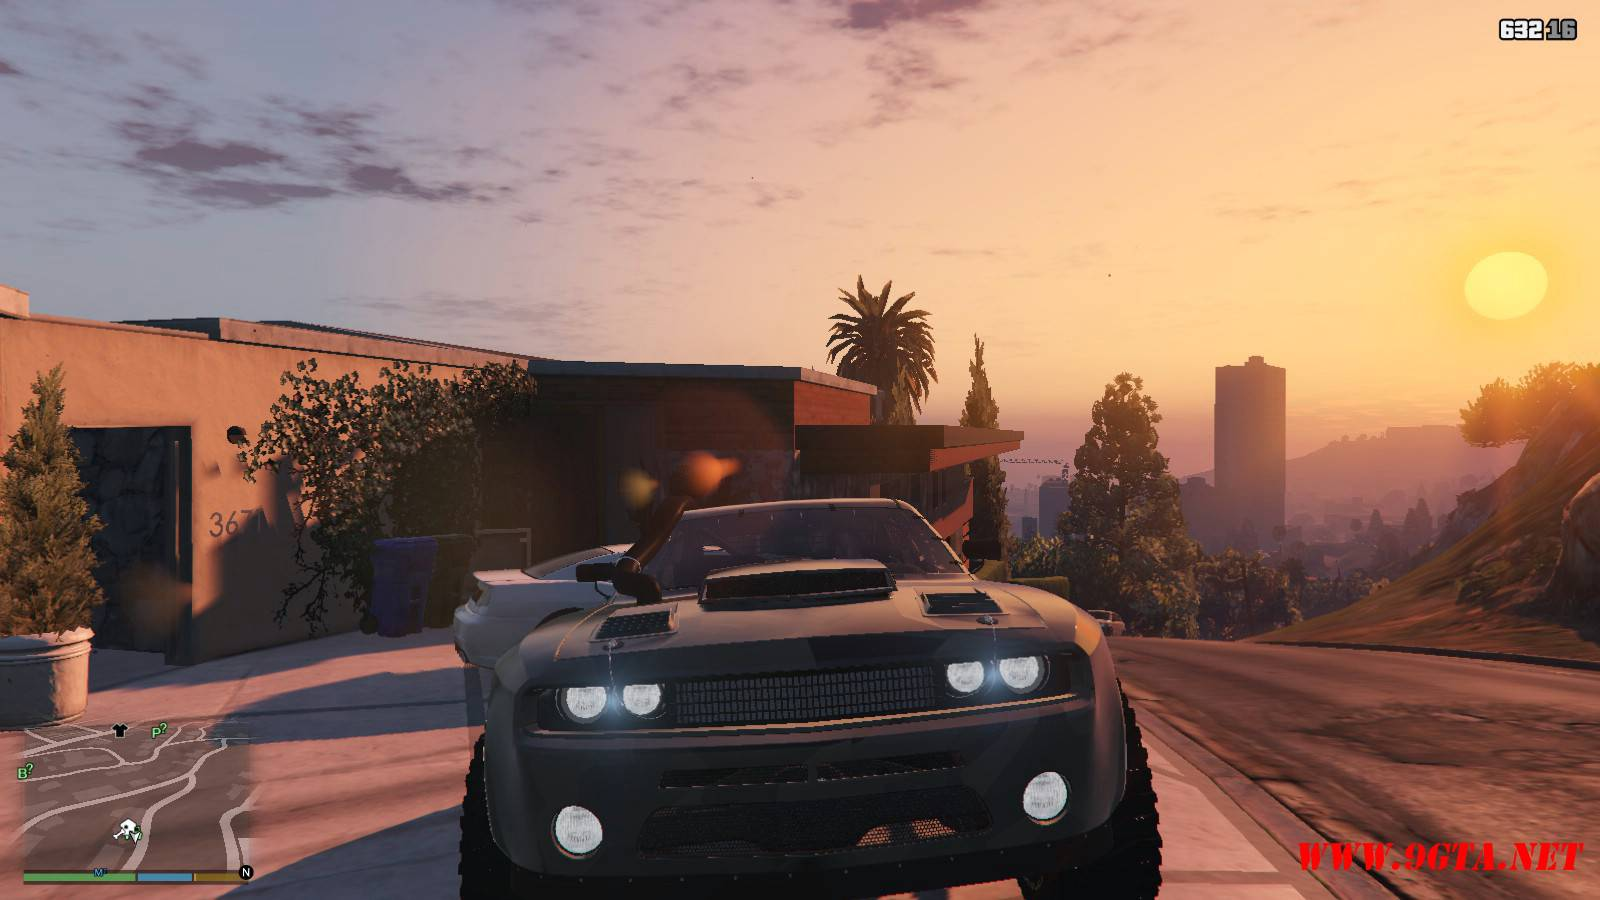 Dodge Charger RAID v1.0 Mod For GTA5 (10)